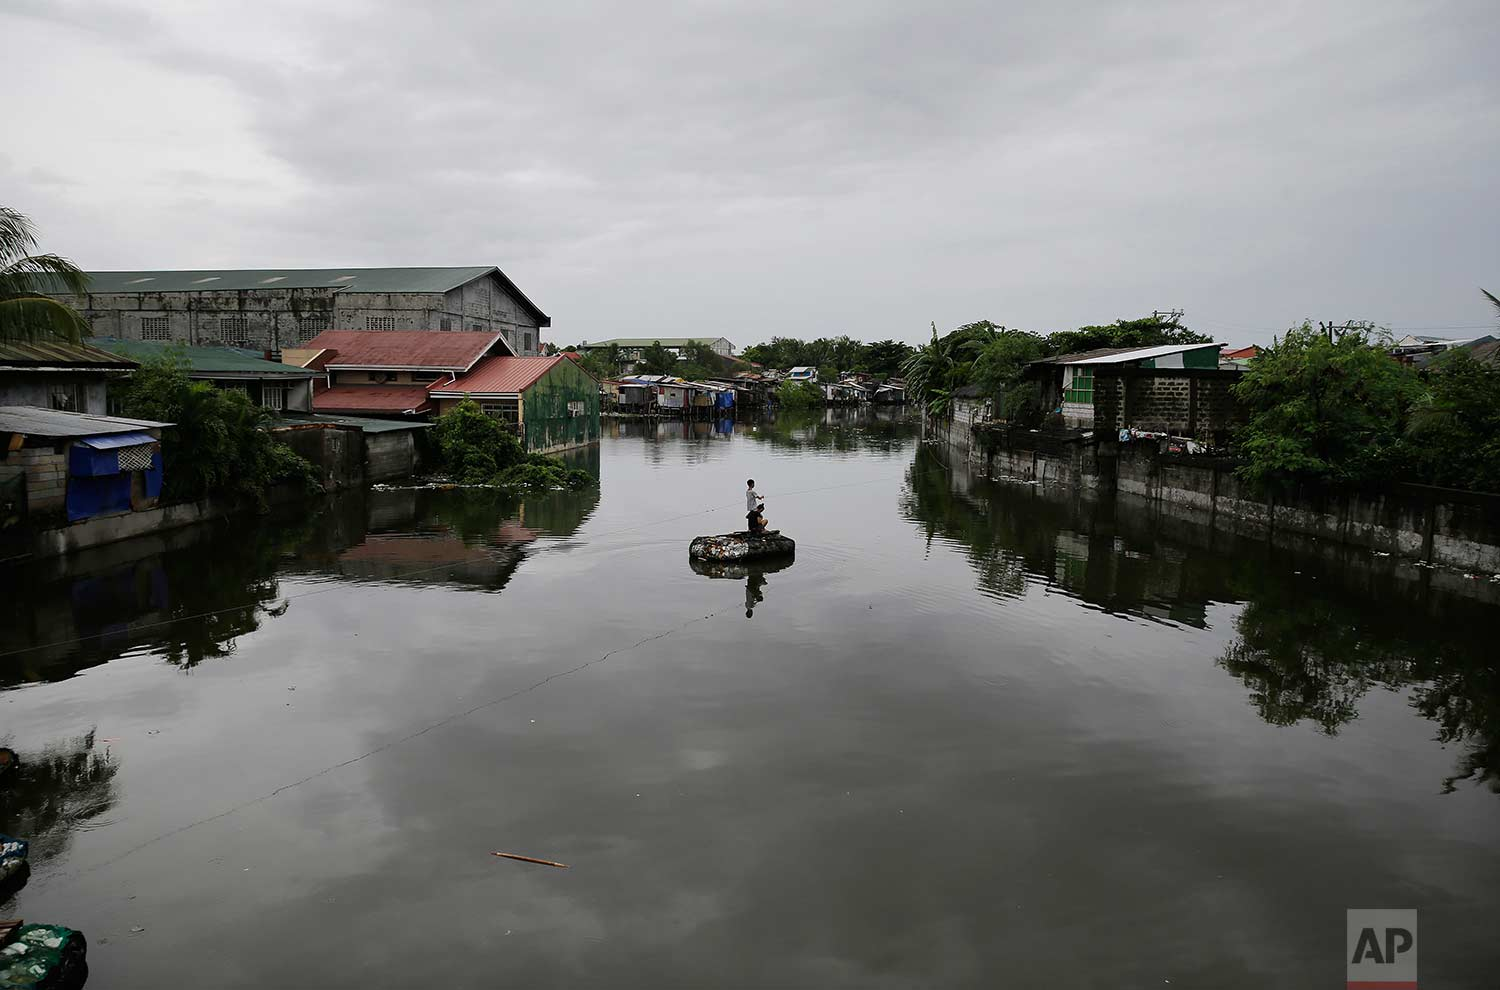 Residents pull a rope in an improvised raft to cross a swollen river caused by tropical storm Gorio on the outskirts of Manila, Philippines on Wednesday, July 26, 2017. (AP Photo/Aaron Favila)